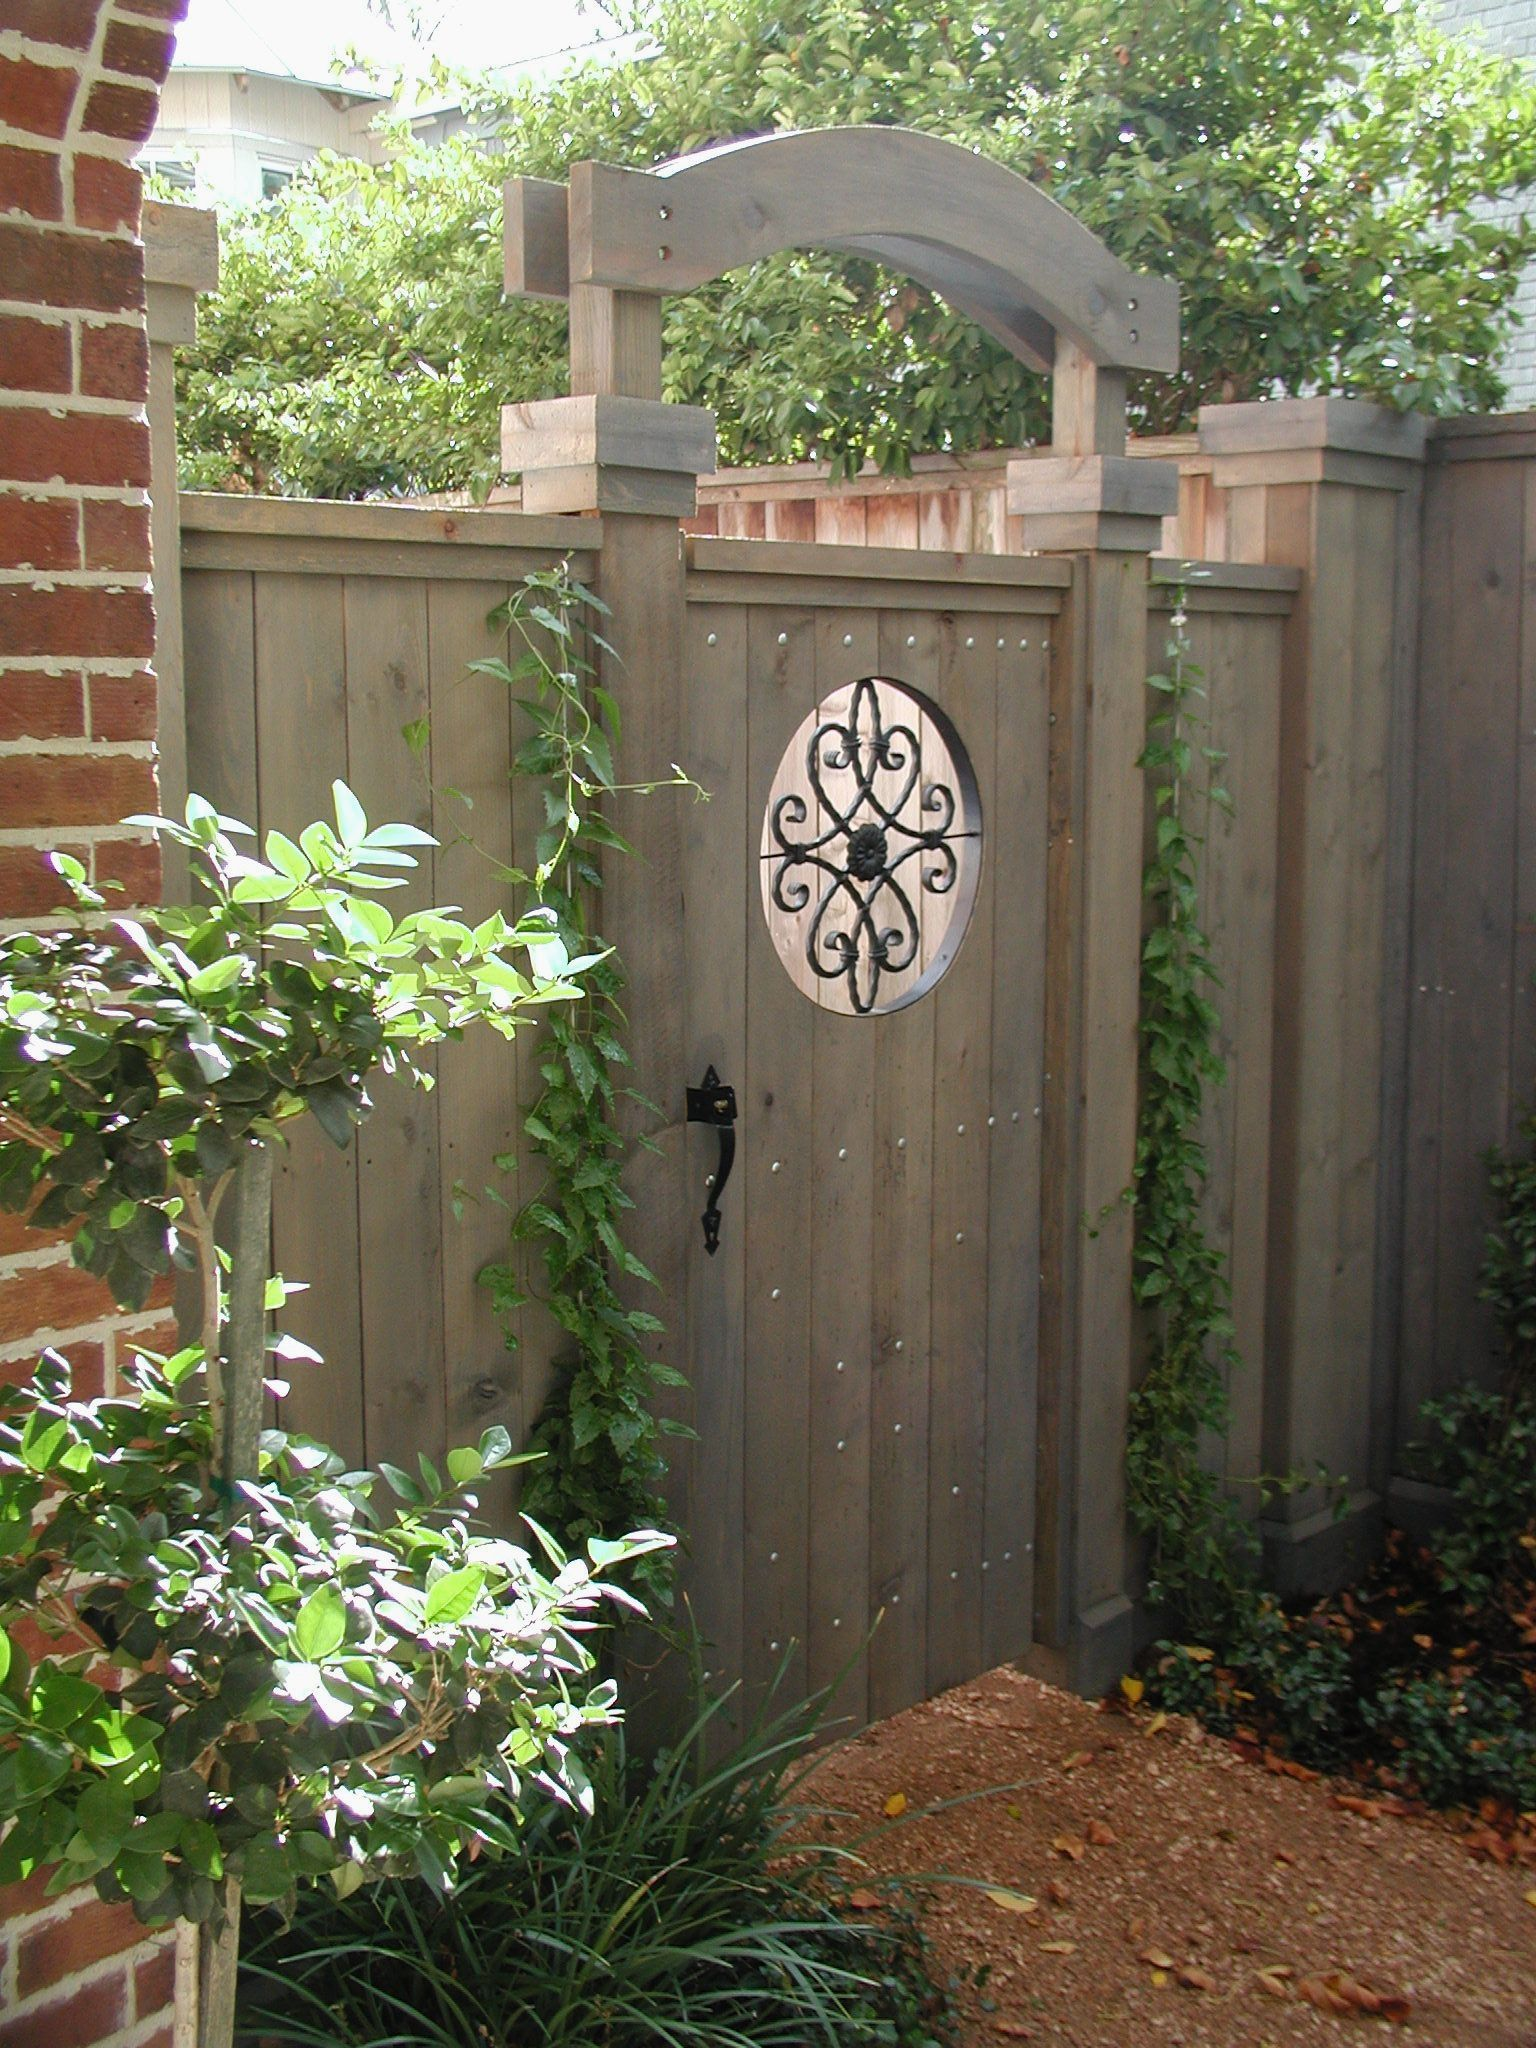 Awesome garden gate plans to create yourself to accent your backyard